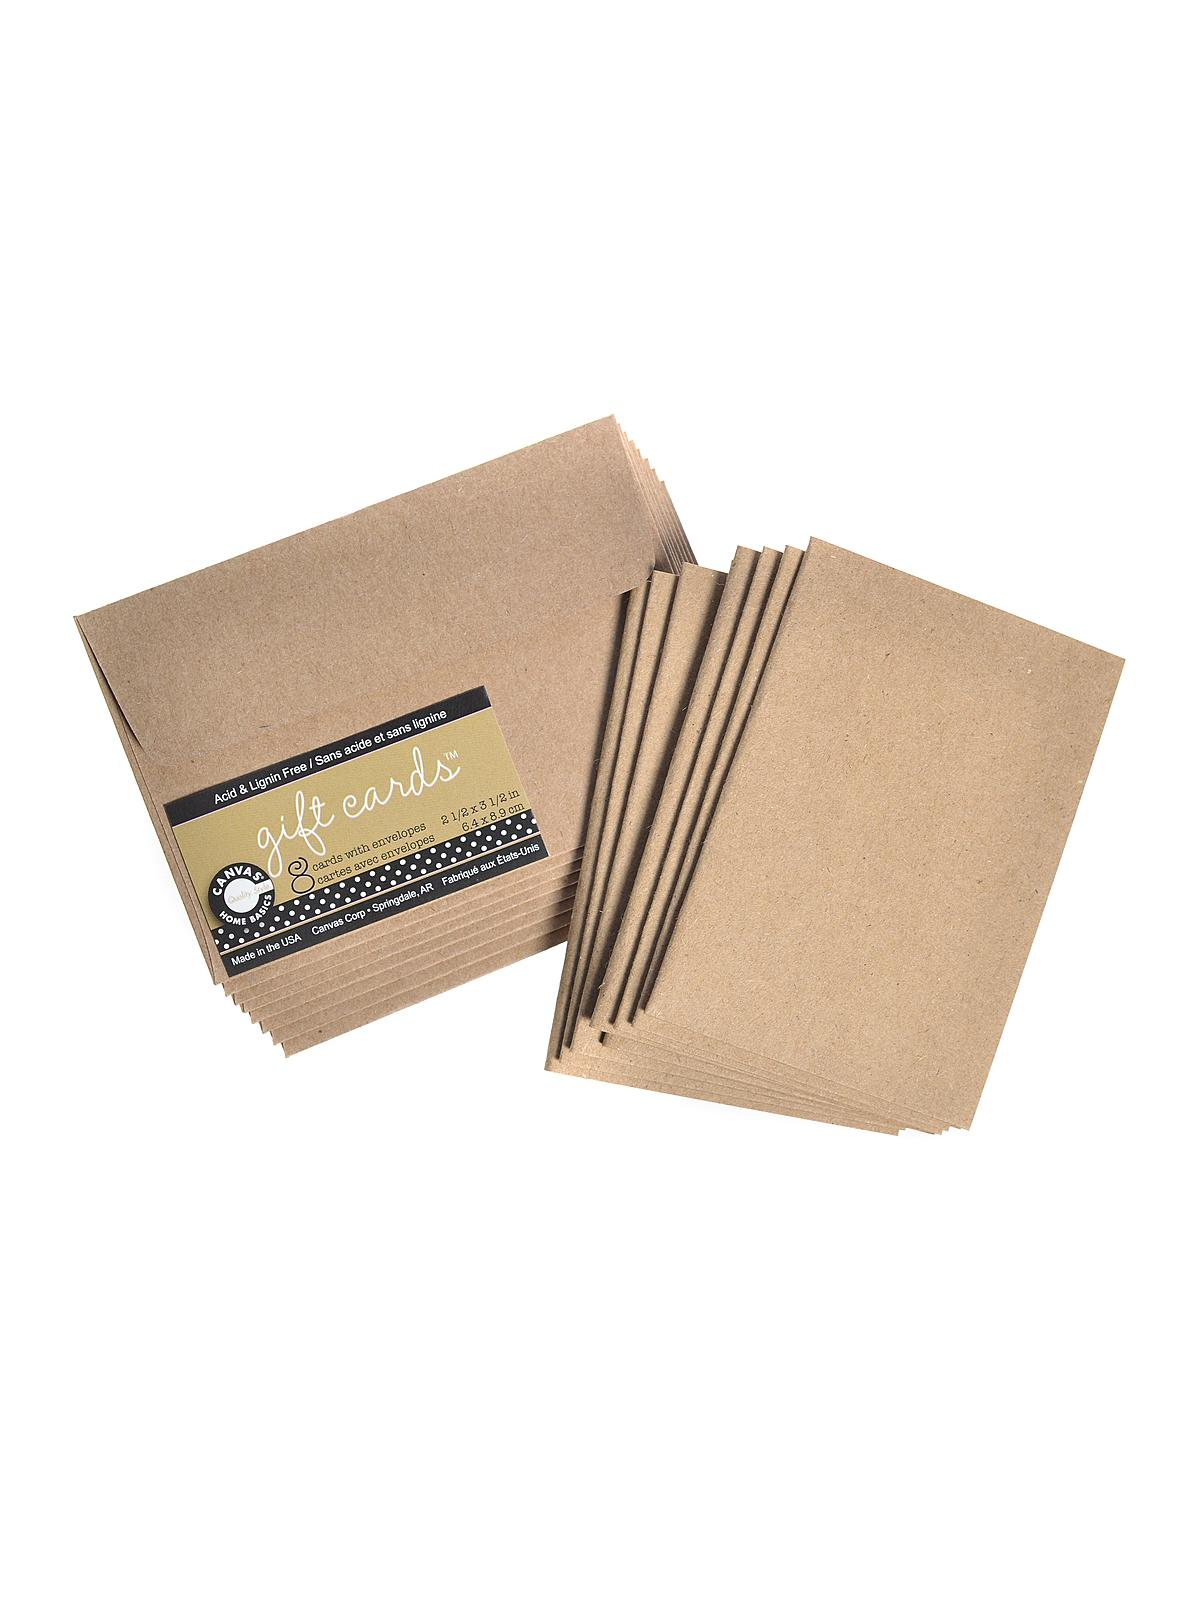 Packaged Cards And Envelopes Gift Cards With Envelopes Kraft 2 1 2 In. X 3 1 2 In. Pack Of 8